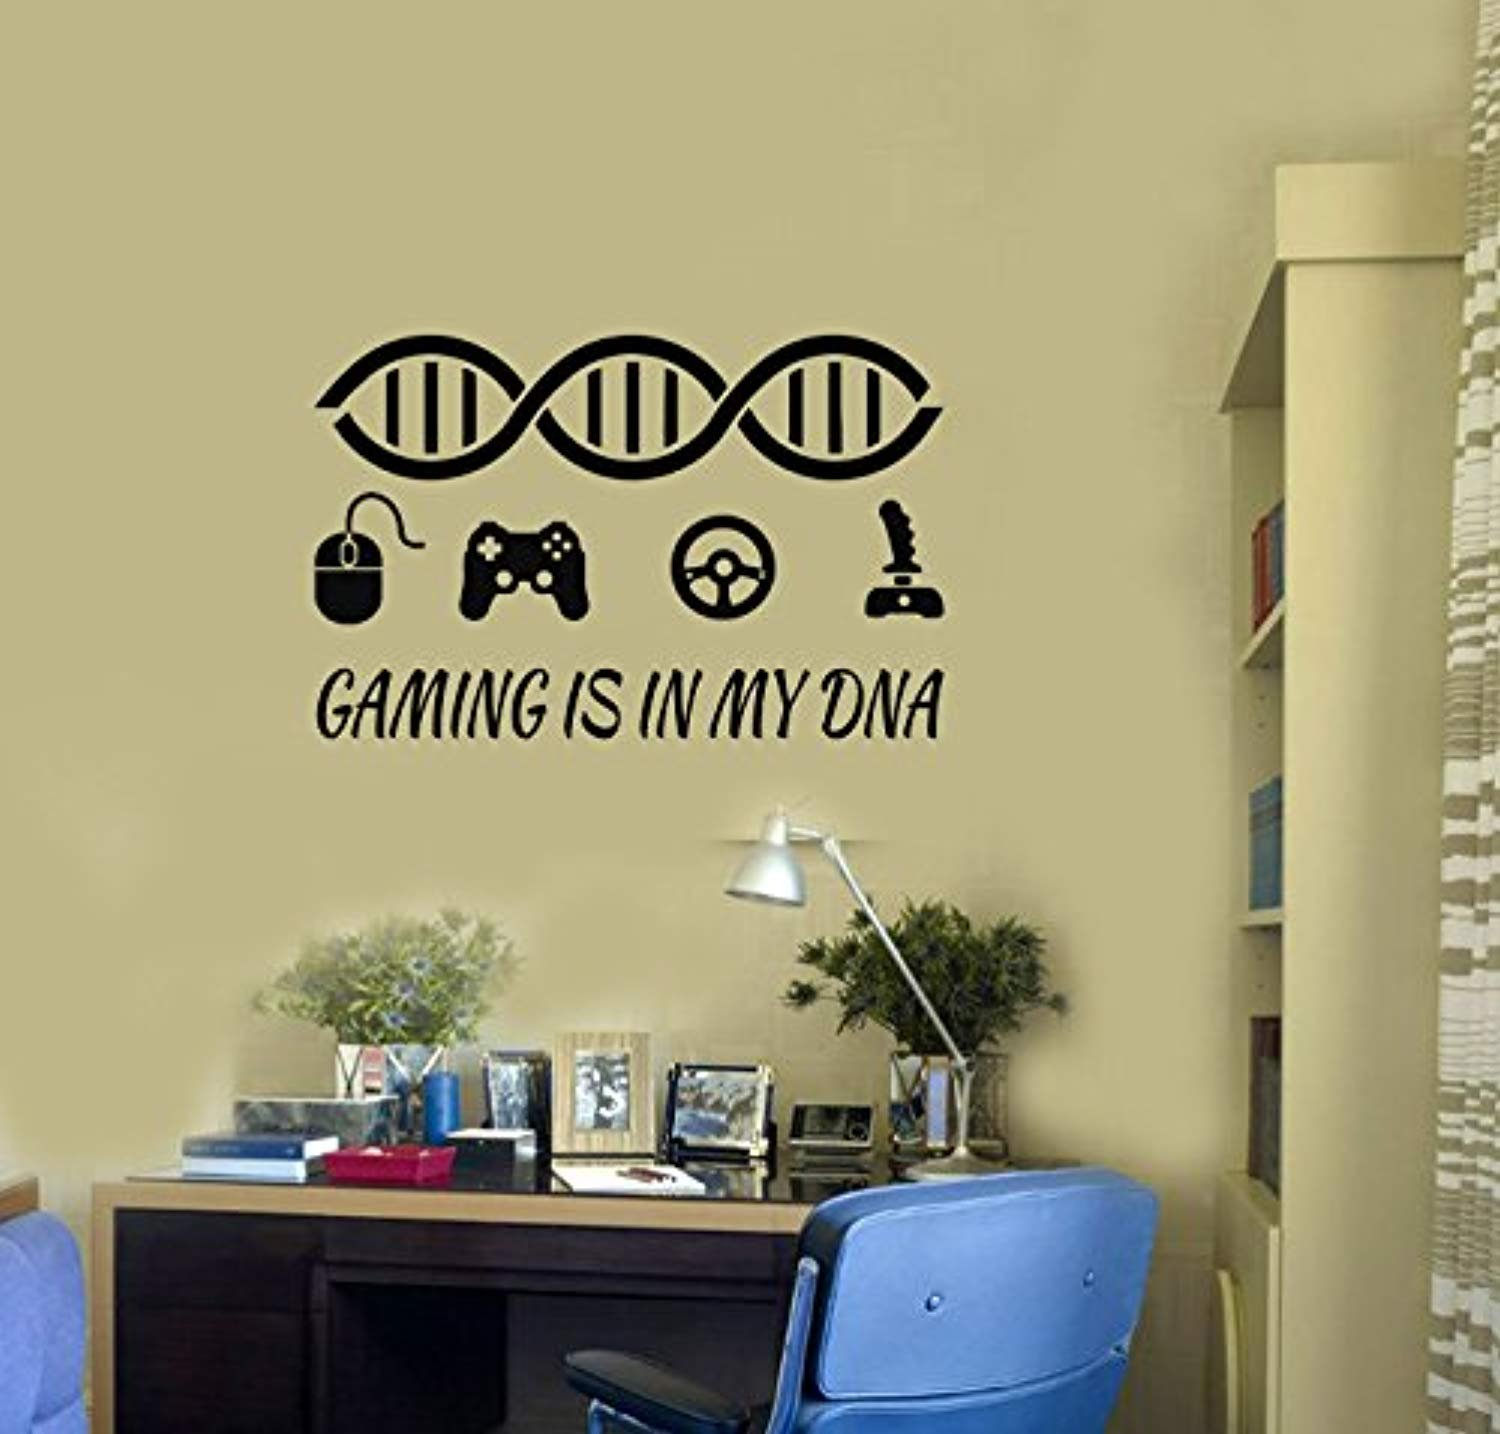 Amazon.com: Gamer Quote Vinyl Wall Decal Gaming DNA Art Gamepads ...